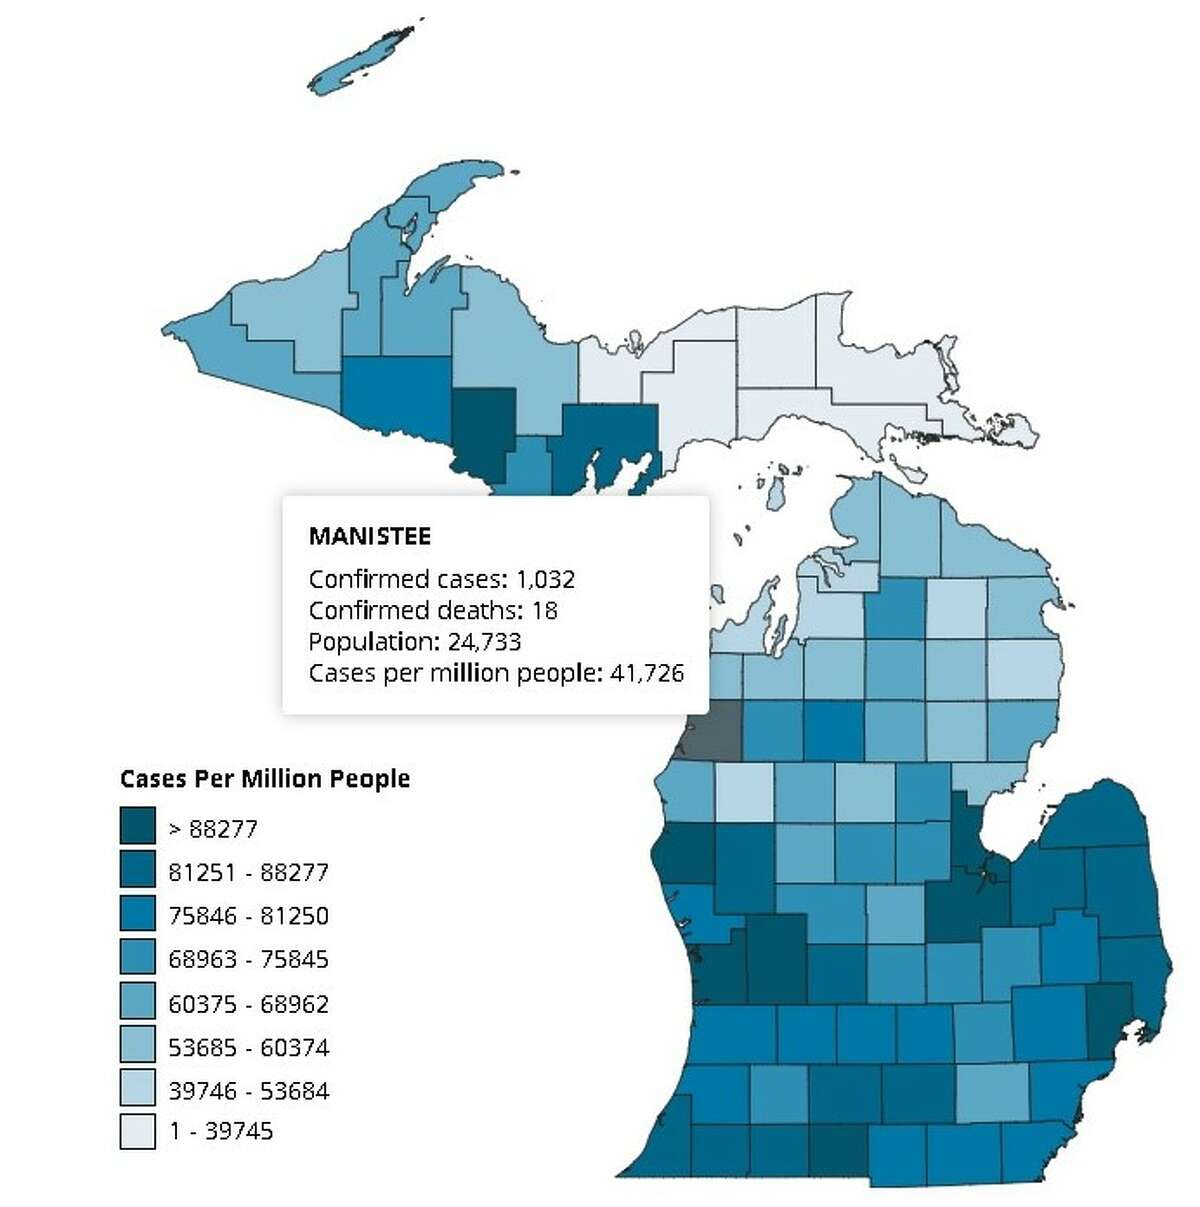 Manistee County has seen 12 new cases of the coronavirus since Friday, according to data provided by the state.